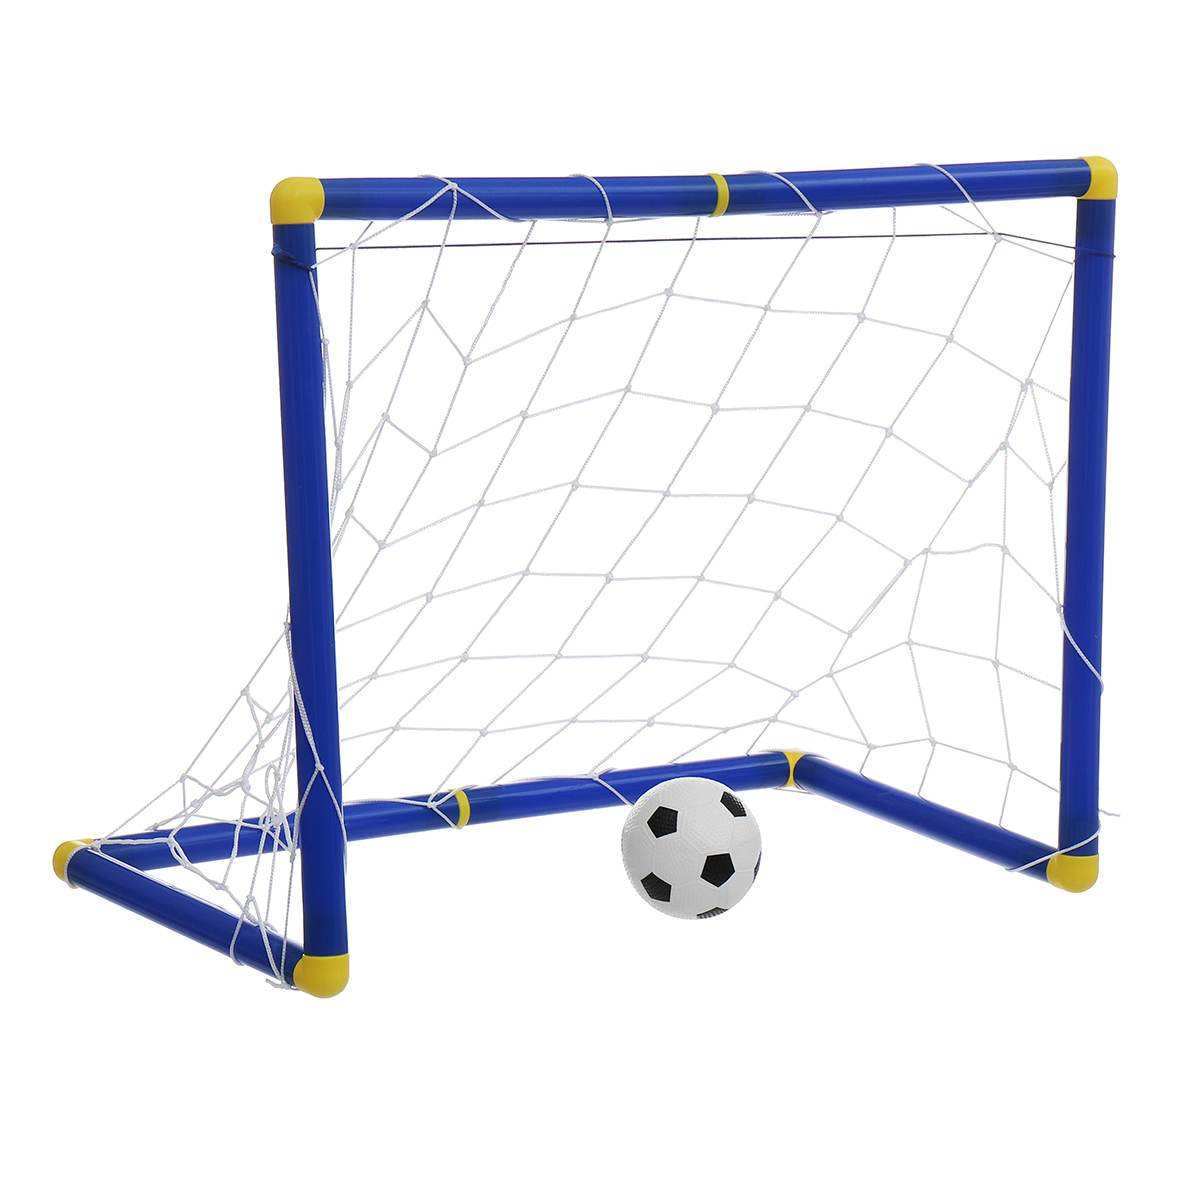 3a32097db Buy soccer goal frame and get free shipping on AliExpress.com